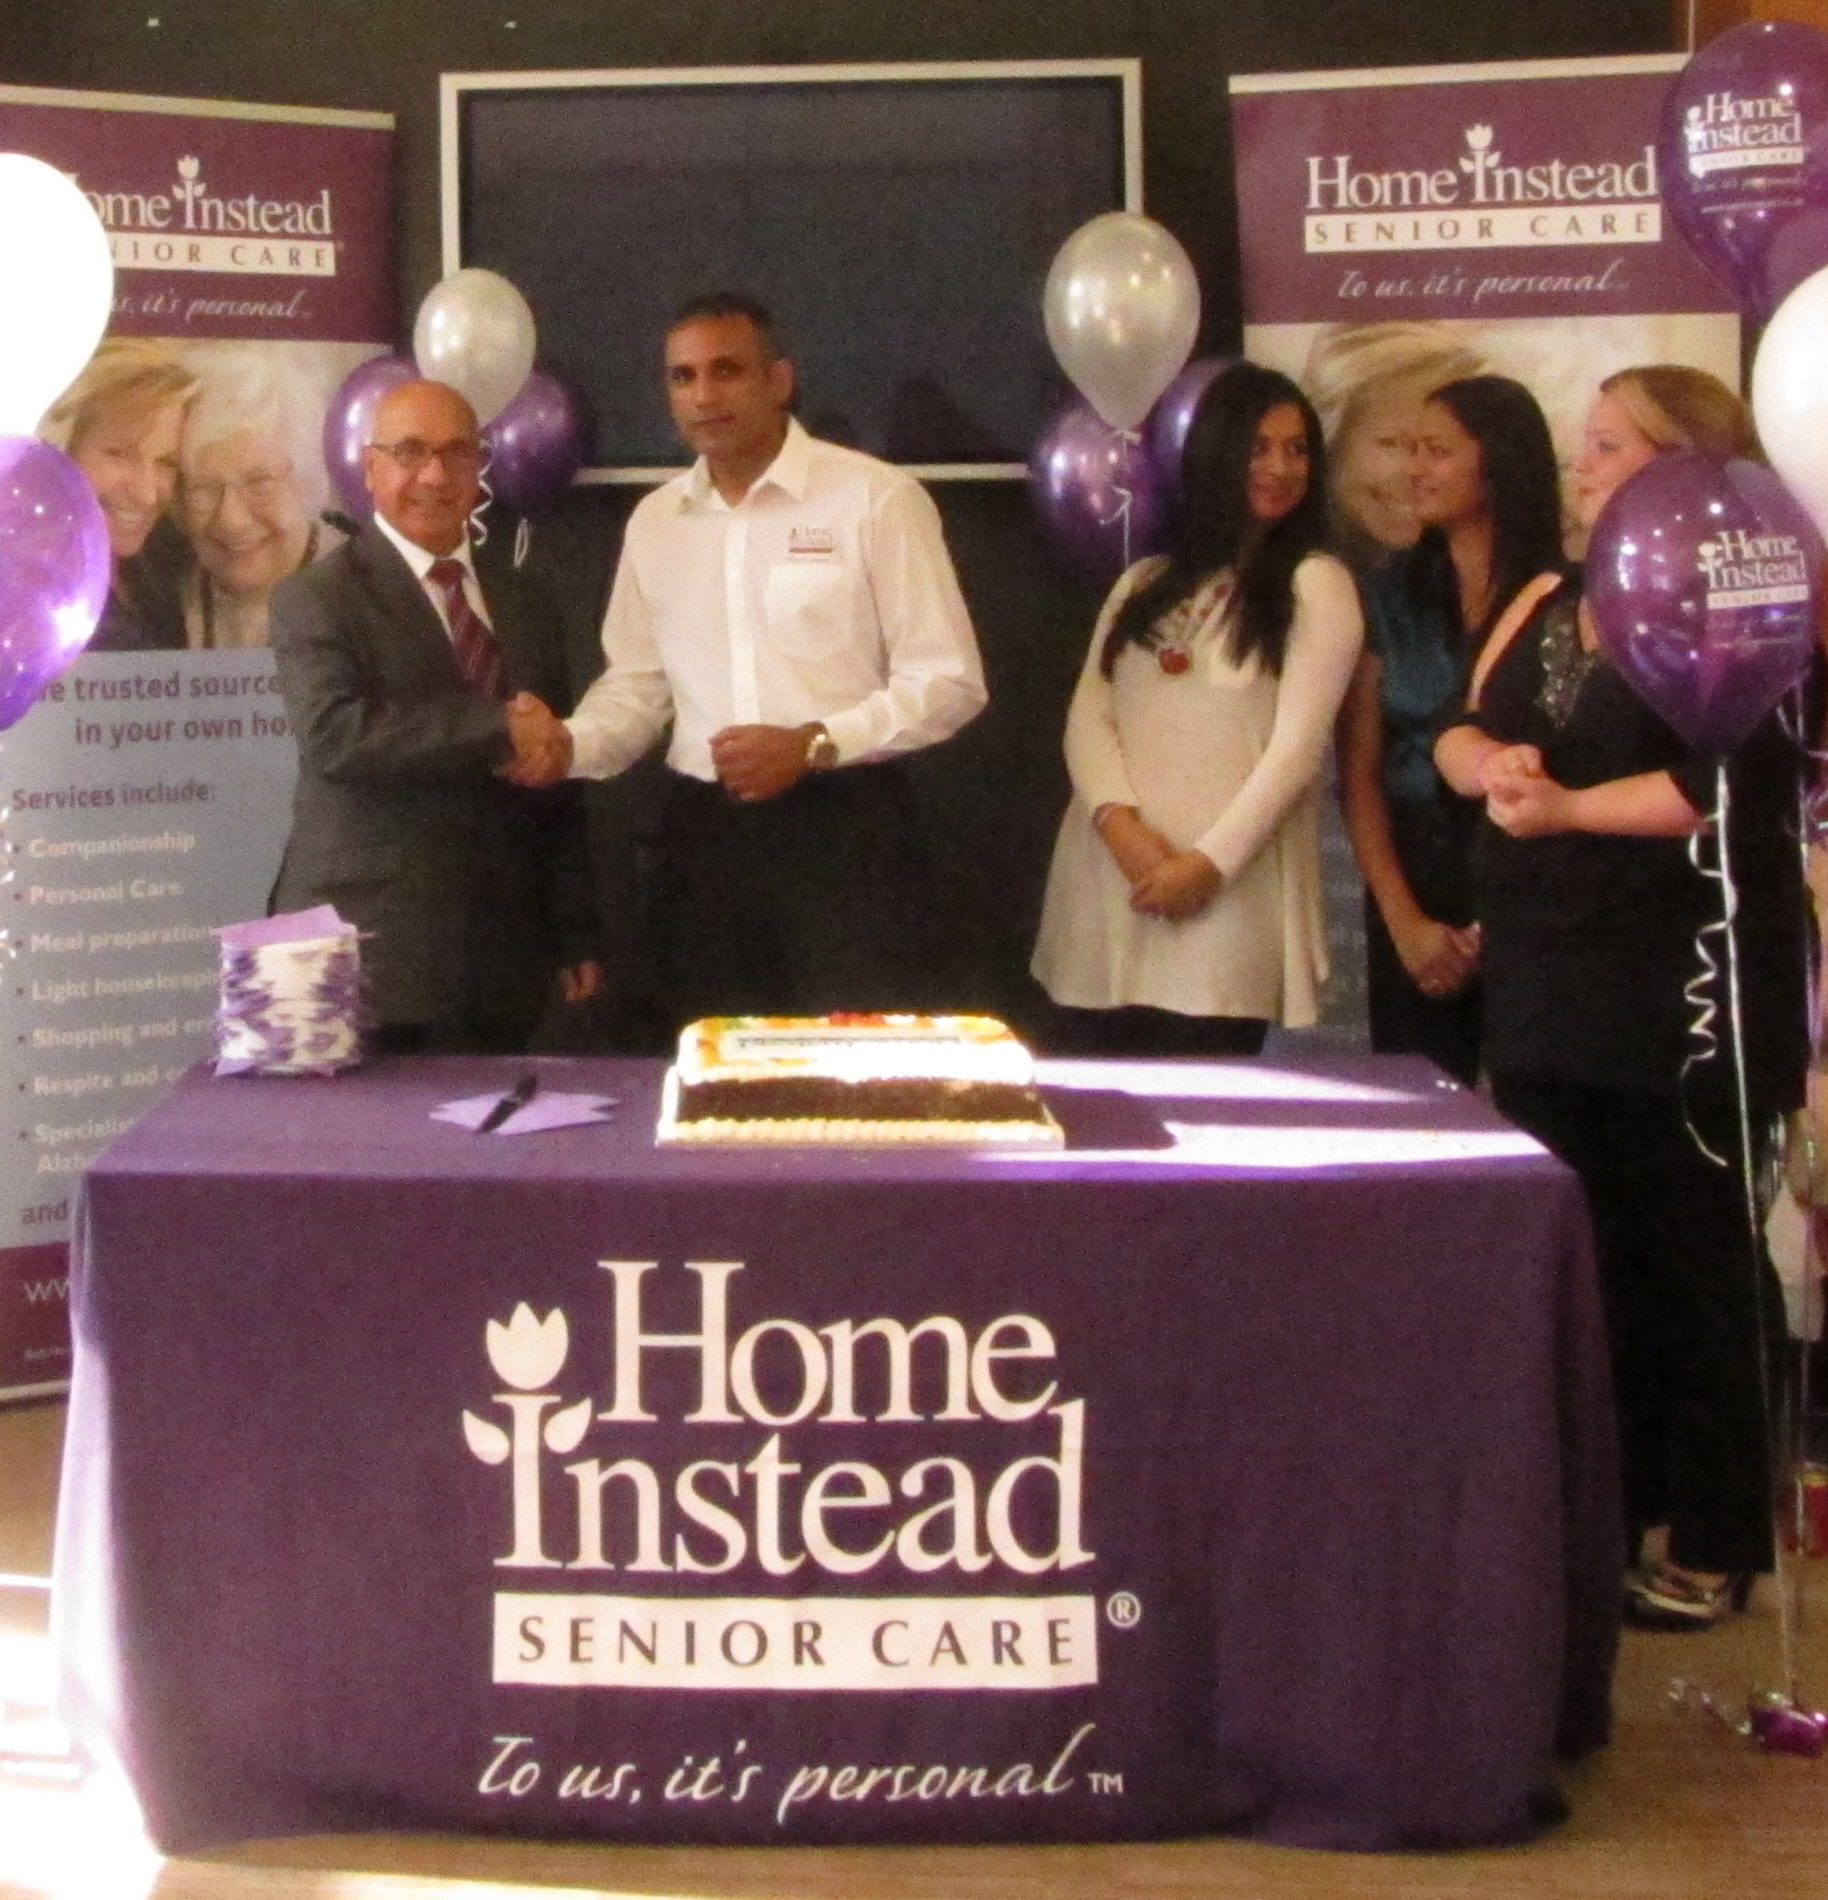 Home Instead Ealing owner Tony Hussein and Ealing MP Virendra Sharma at Home Instead's open company day